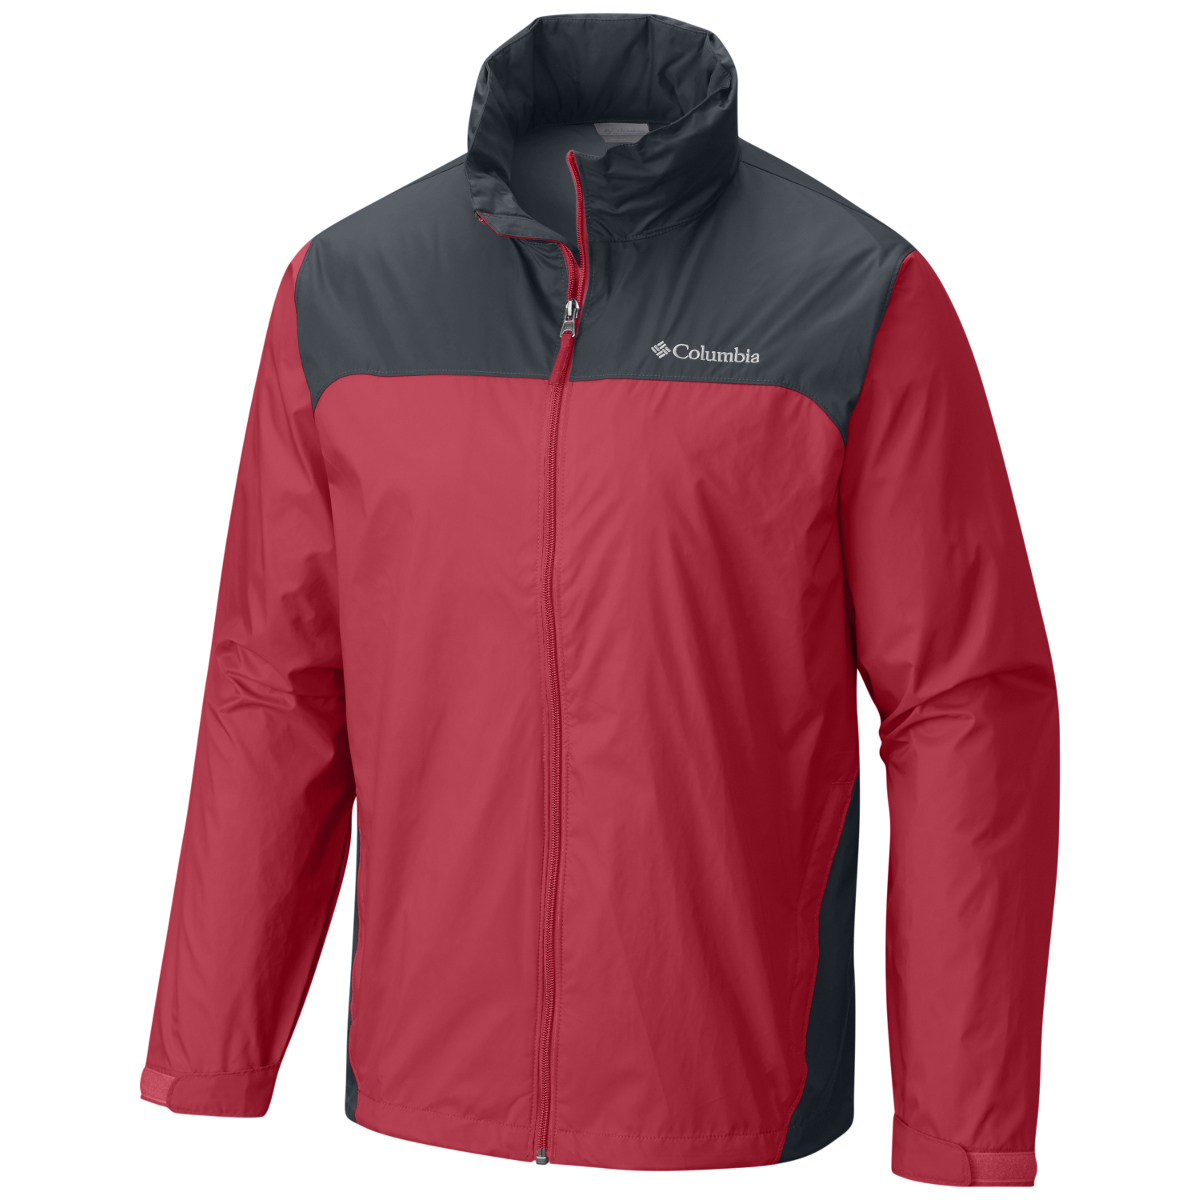 Columbia Men's Glennaker Lake Rain Jacket - Red, M